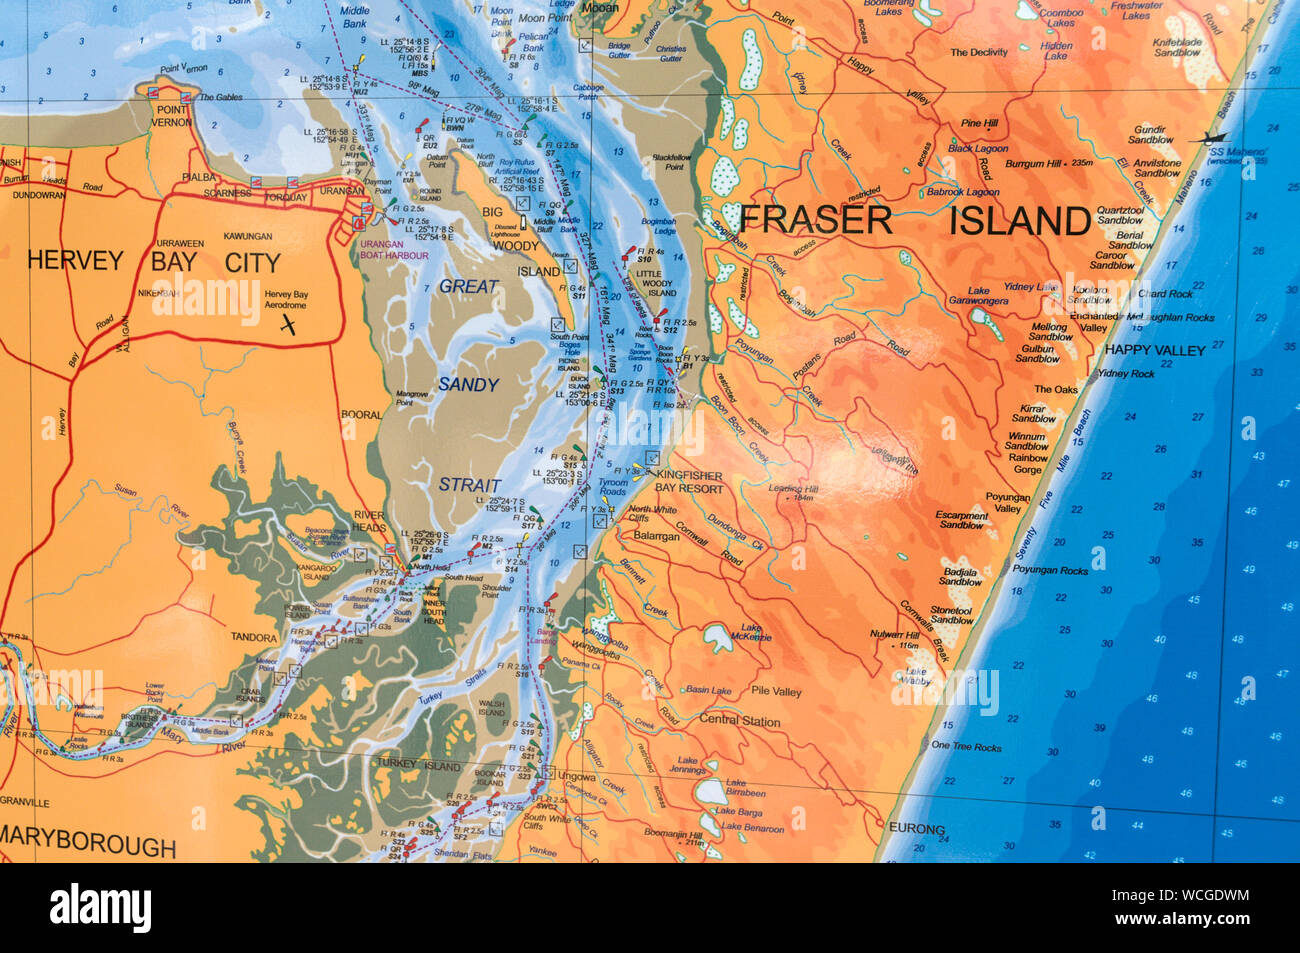 A wall map showing part of Fraser Island and Hevey Bay on ... Mainland World Map on norristown map, franconia map, ambler map, milford map, lafayette hill map, warrington map, upper darby map, blue bell map, souderton map, lansdale map, lincoln university map, frederick map, orkney map, wayne map, conshohocken map, valley forge map, pentland firth map, new hope map, monroeville map, media map,